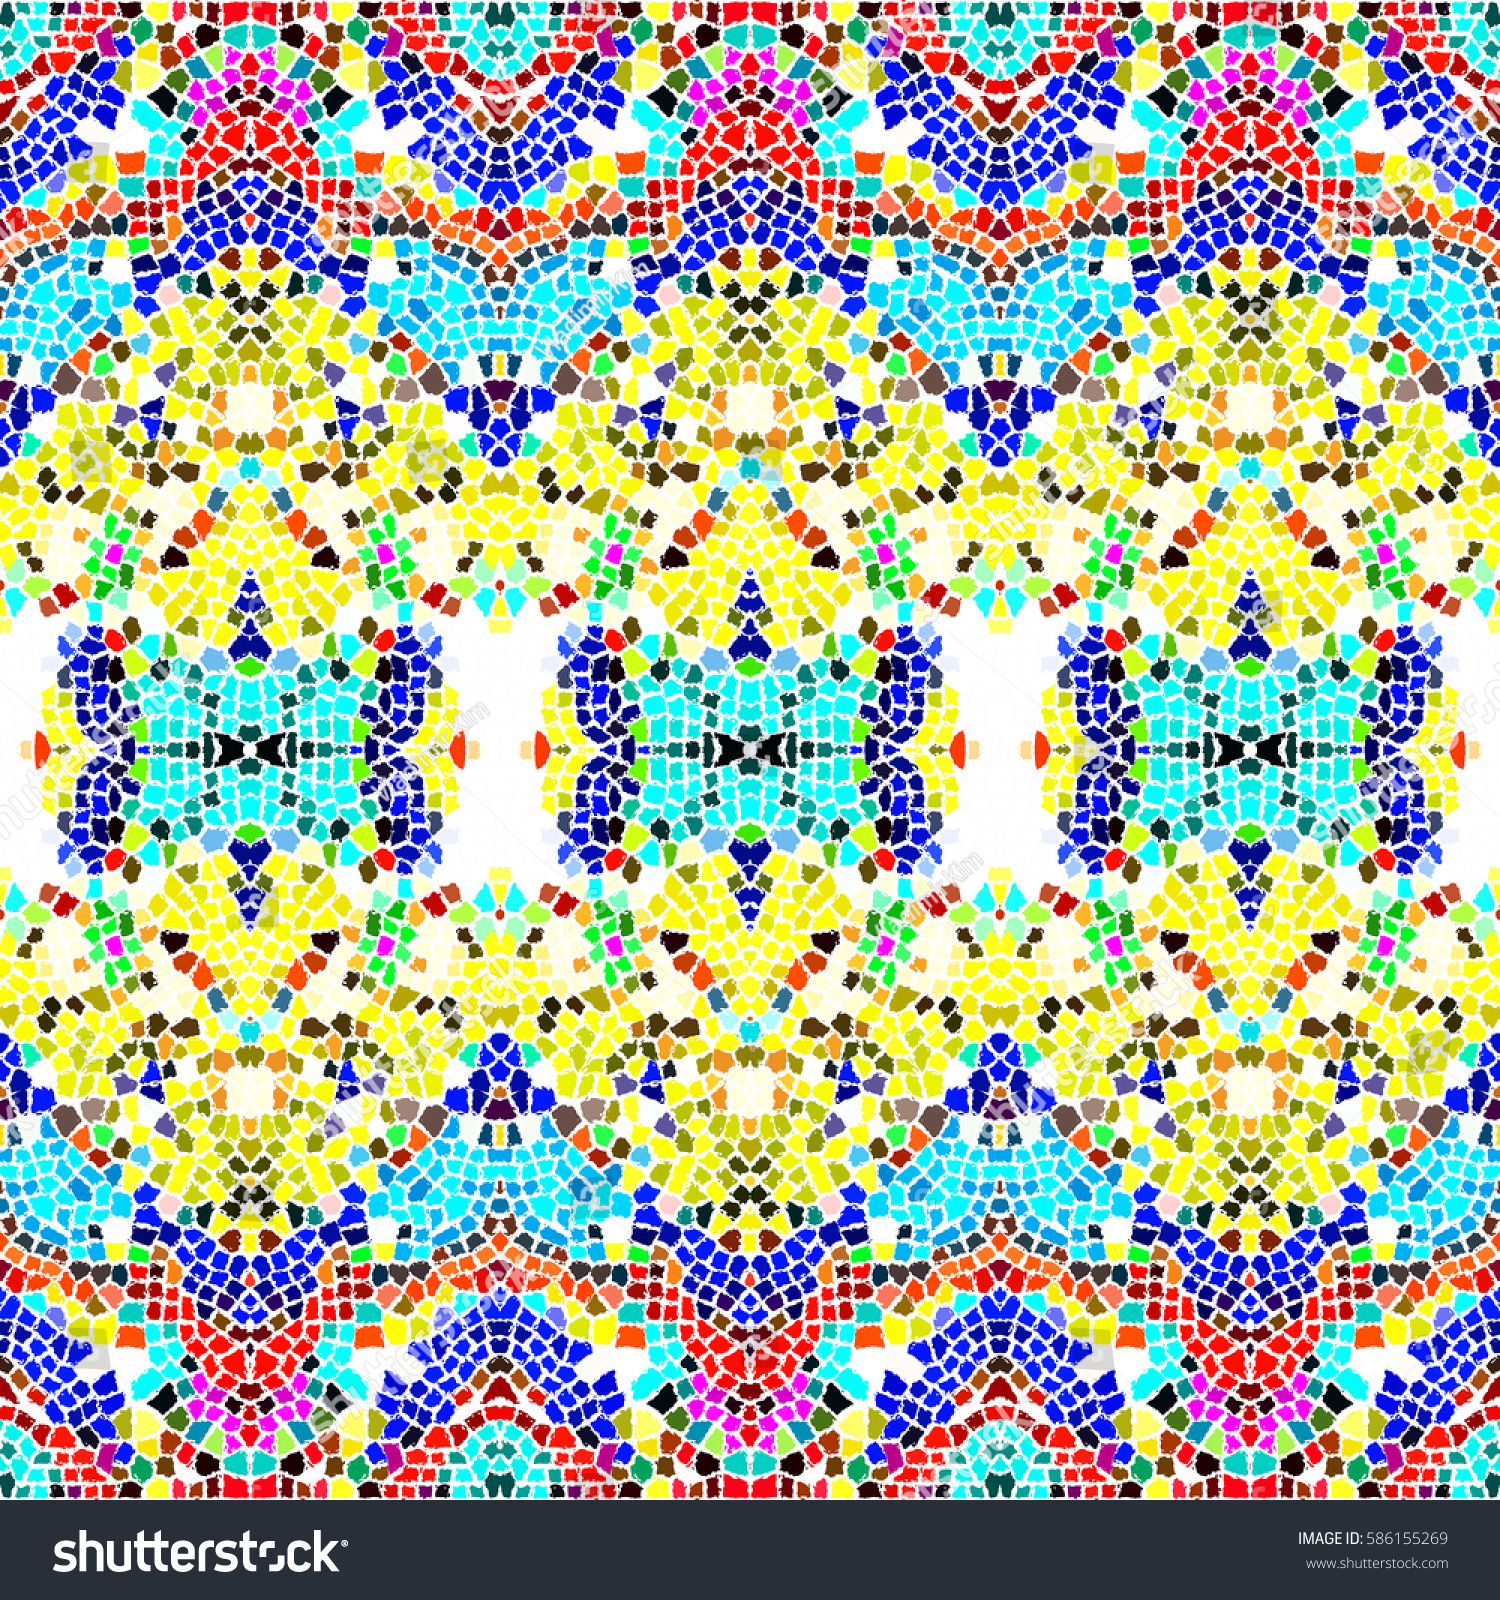 Mosaic square colorful pattern for wallpapers, ceramic tiles, design ...